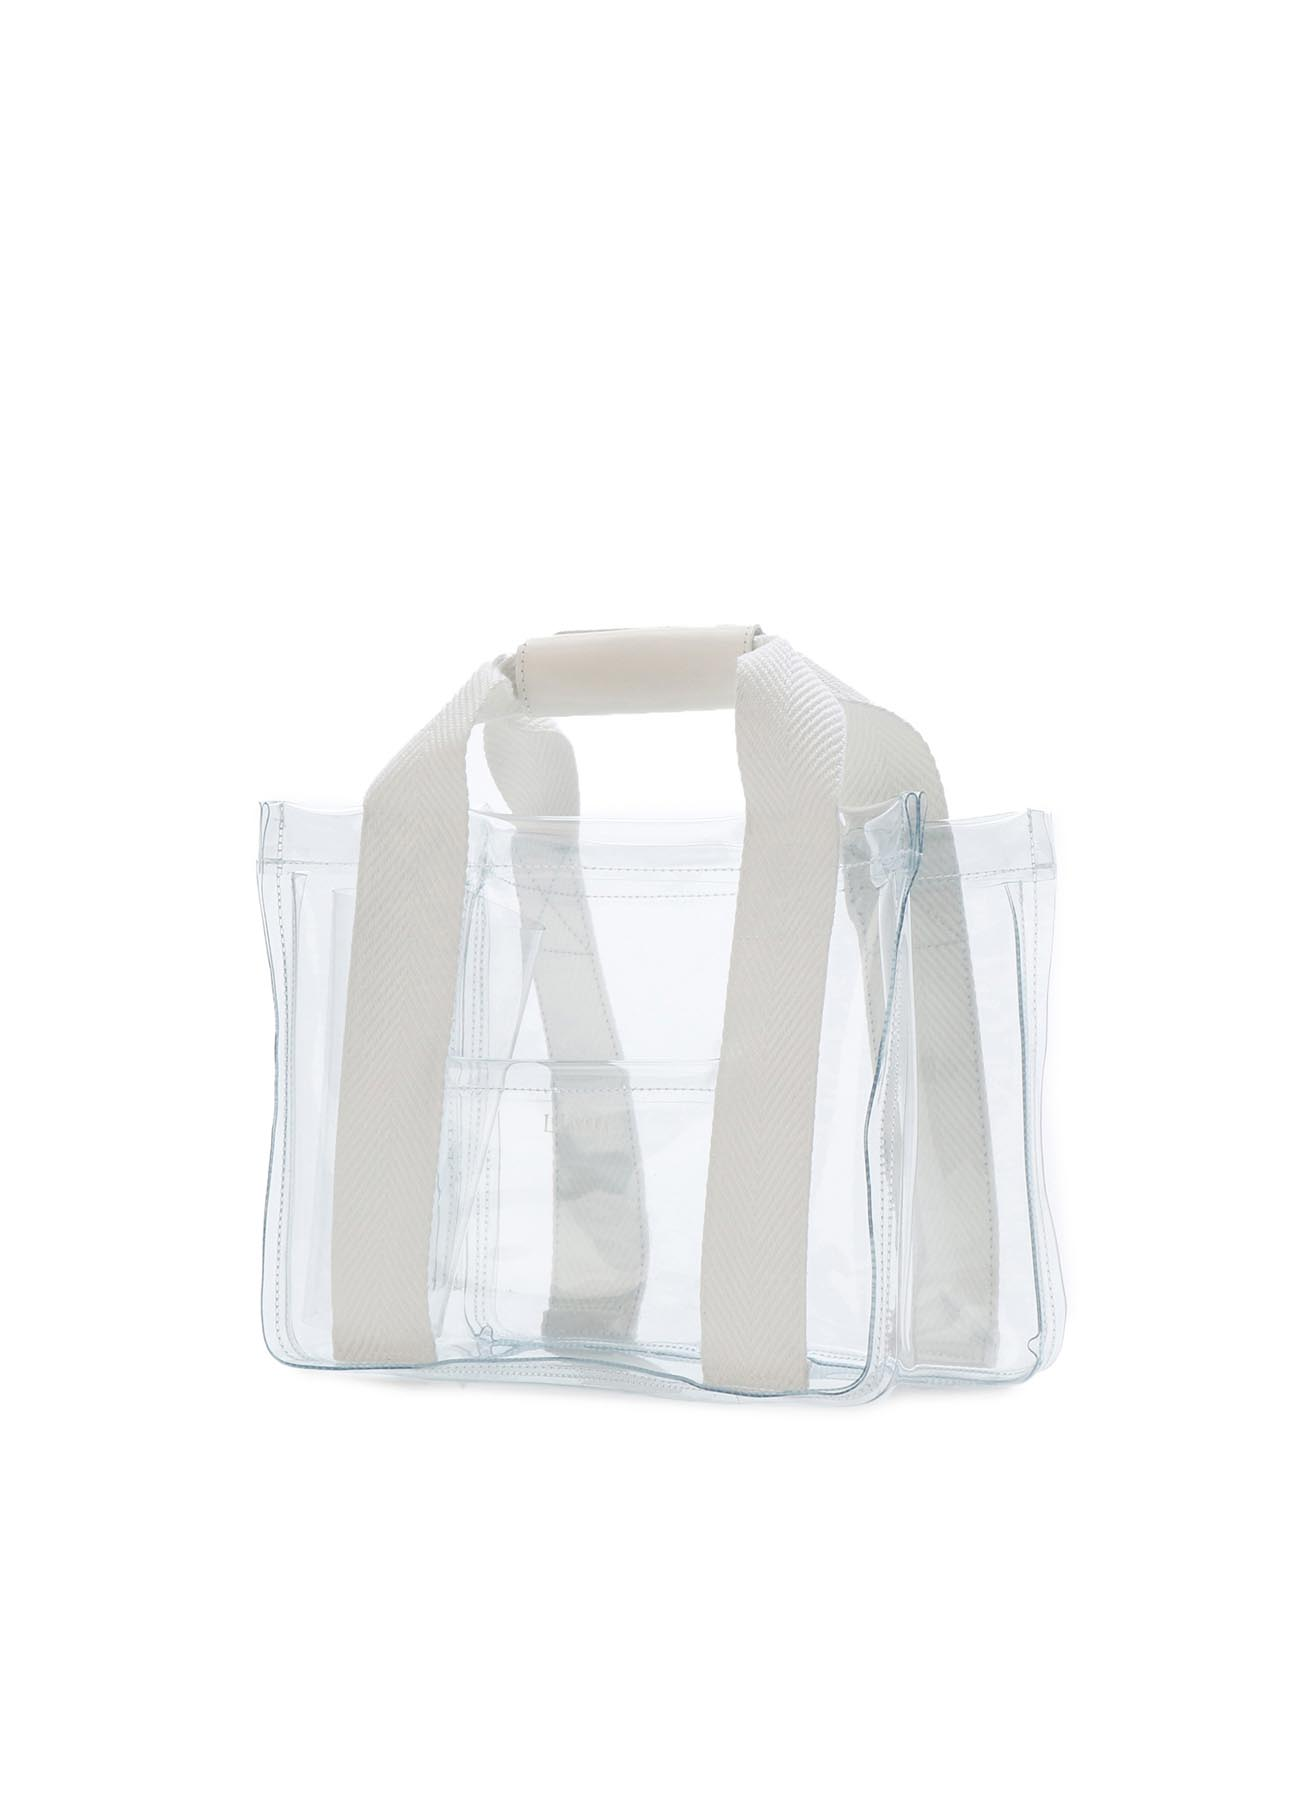 [THE SHOP Limited Product] PVC Hand Bag